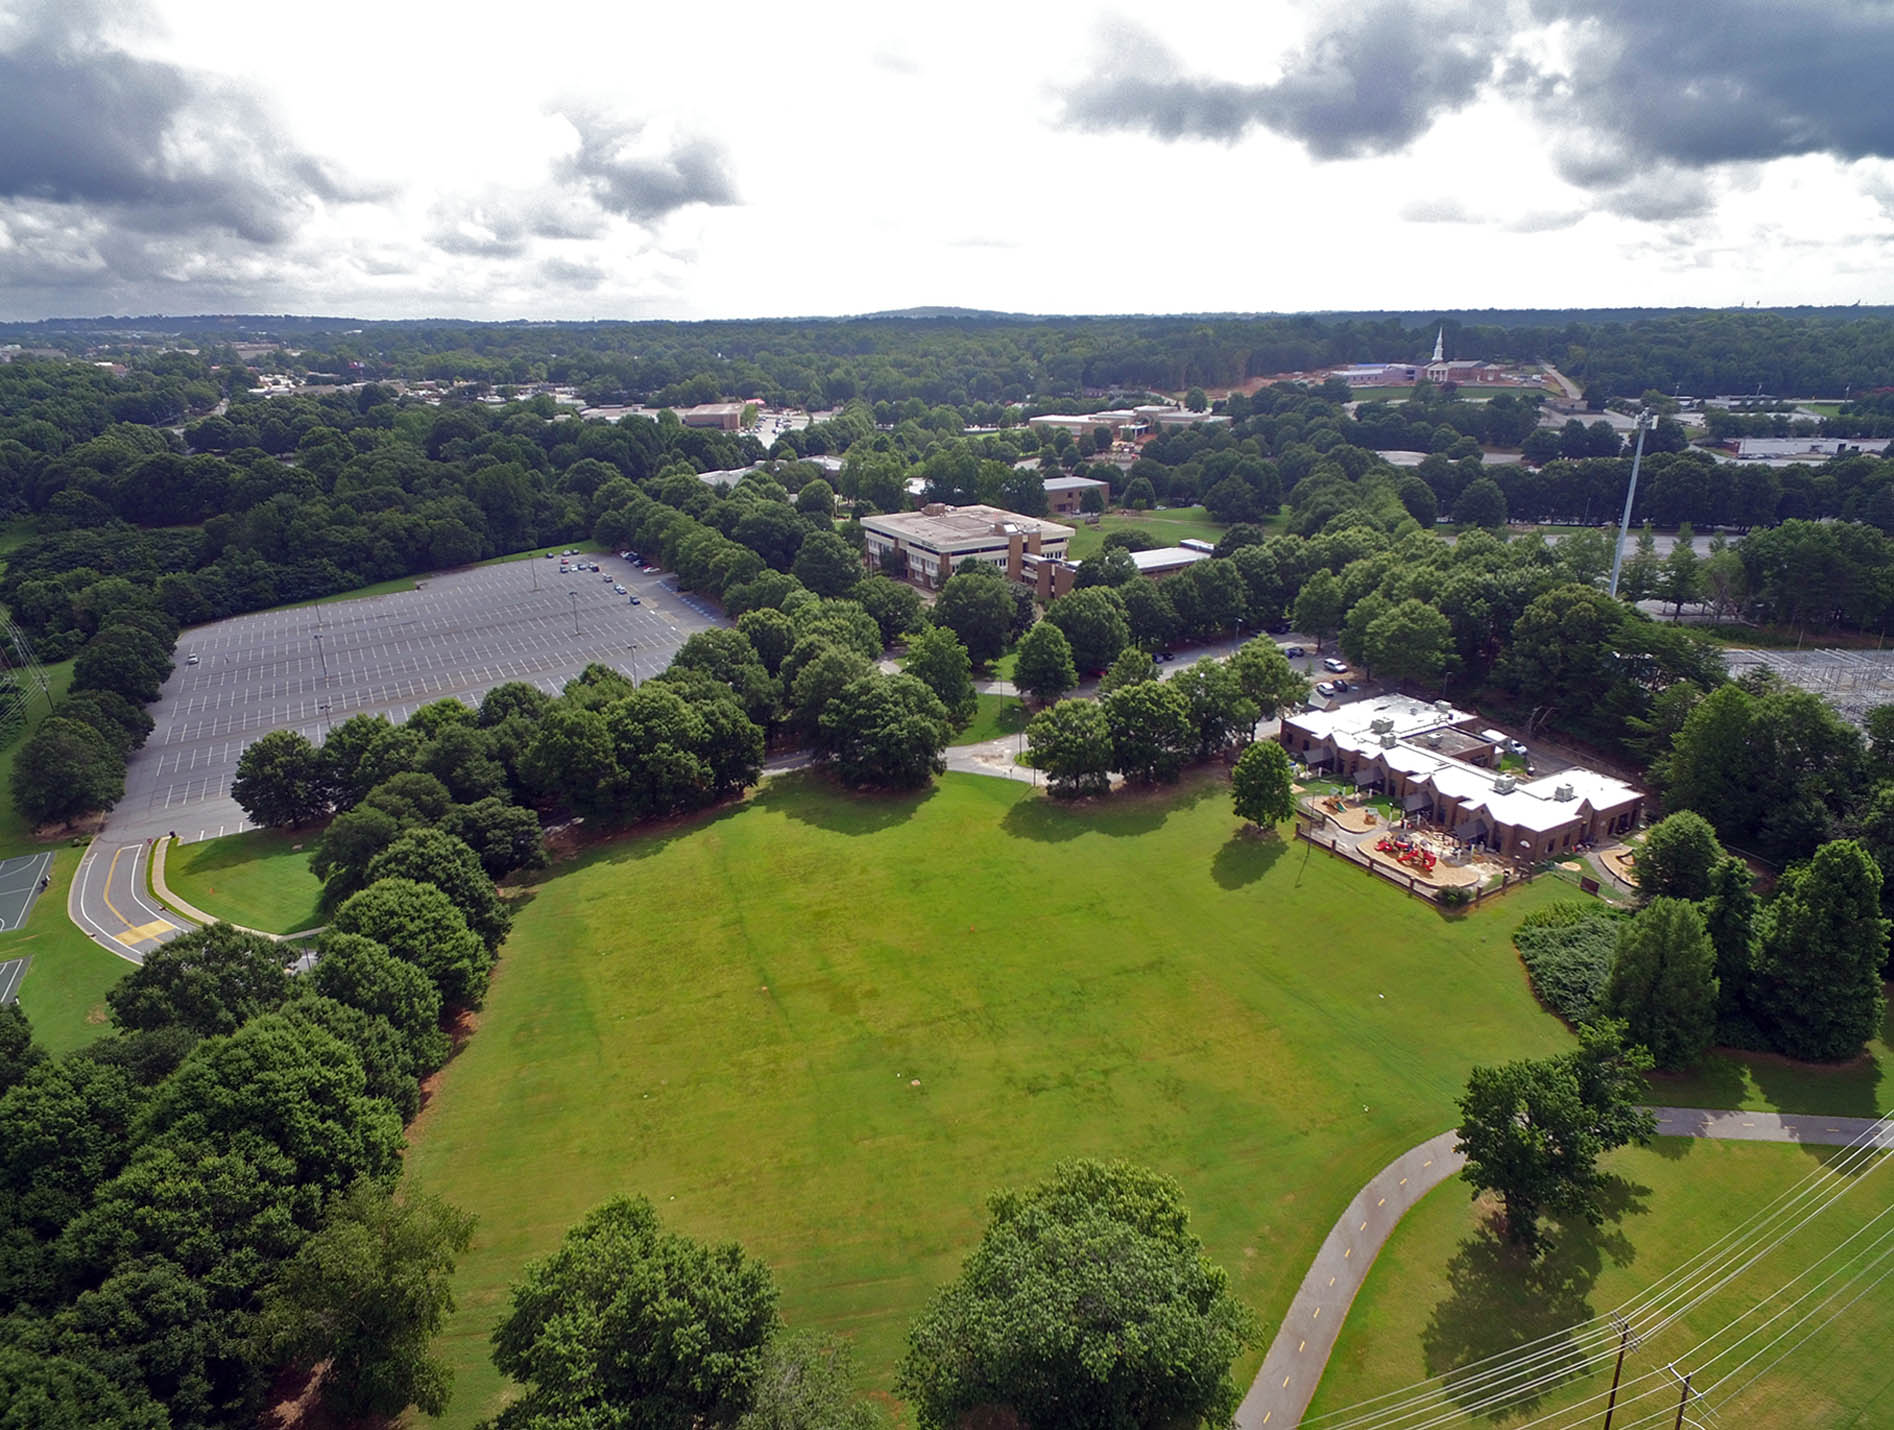 Triangle Mobilizes at GTCHS for New Student Activity Center